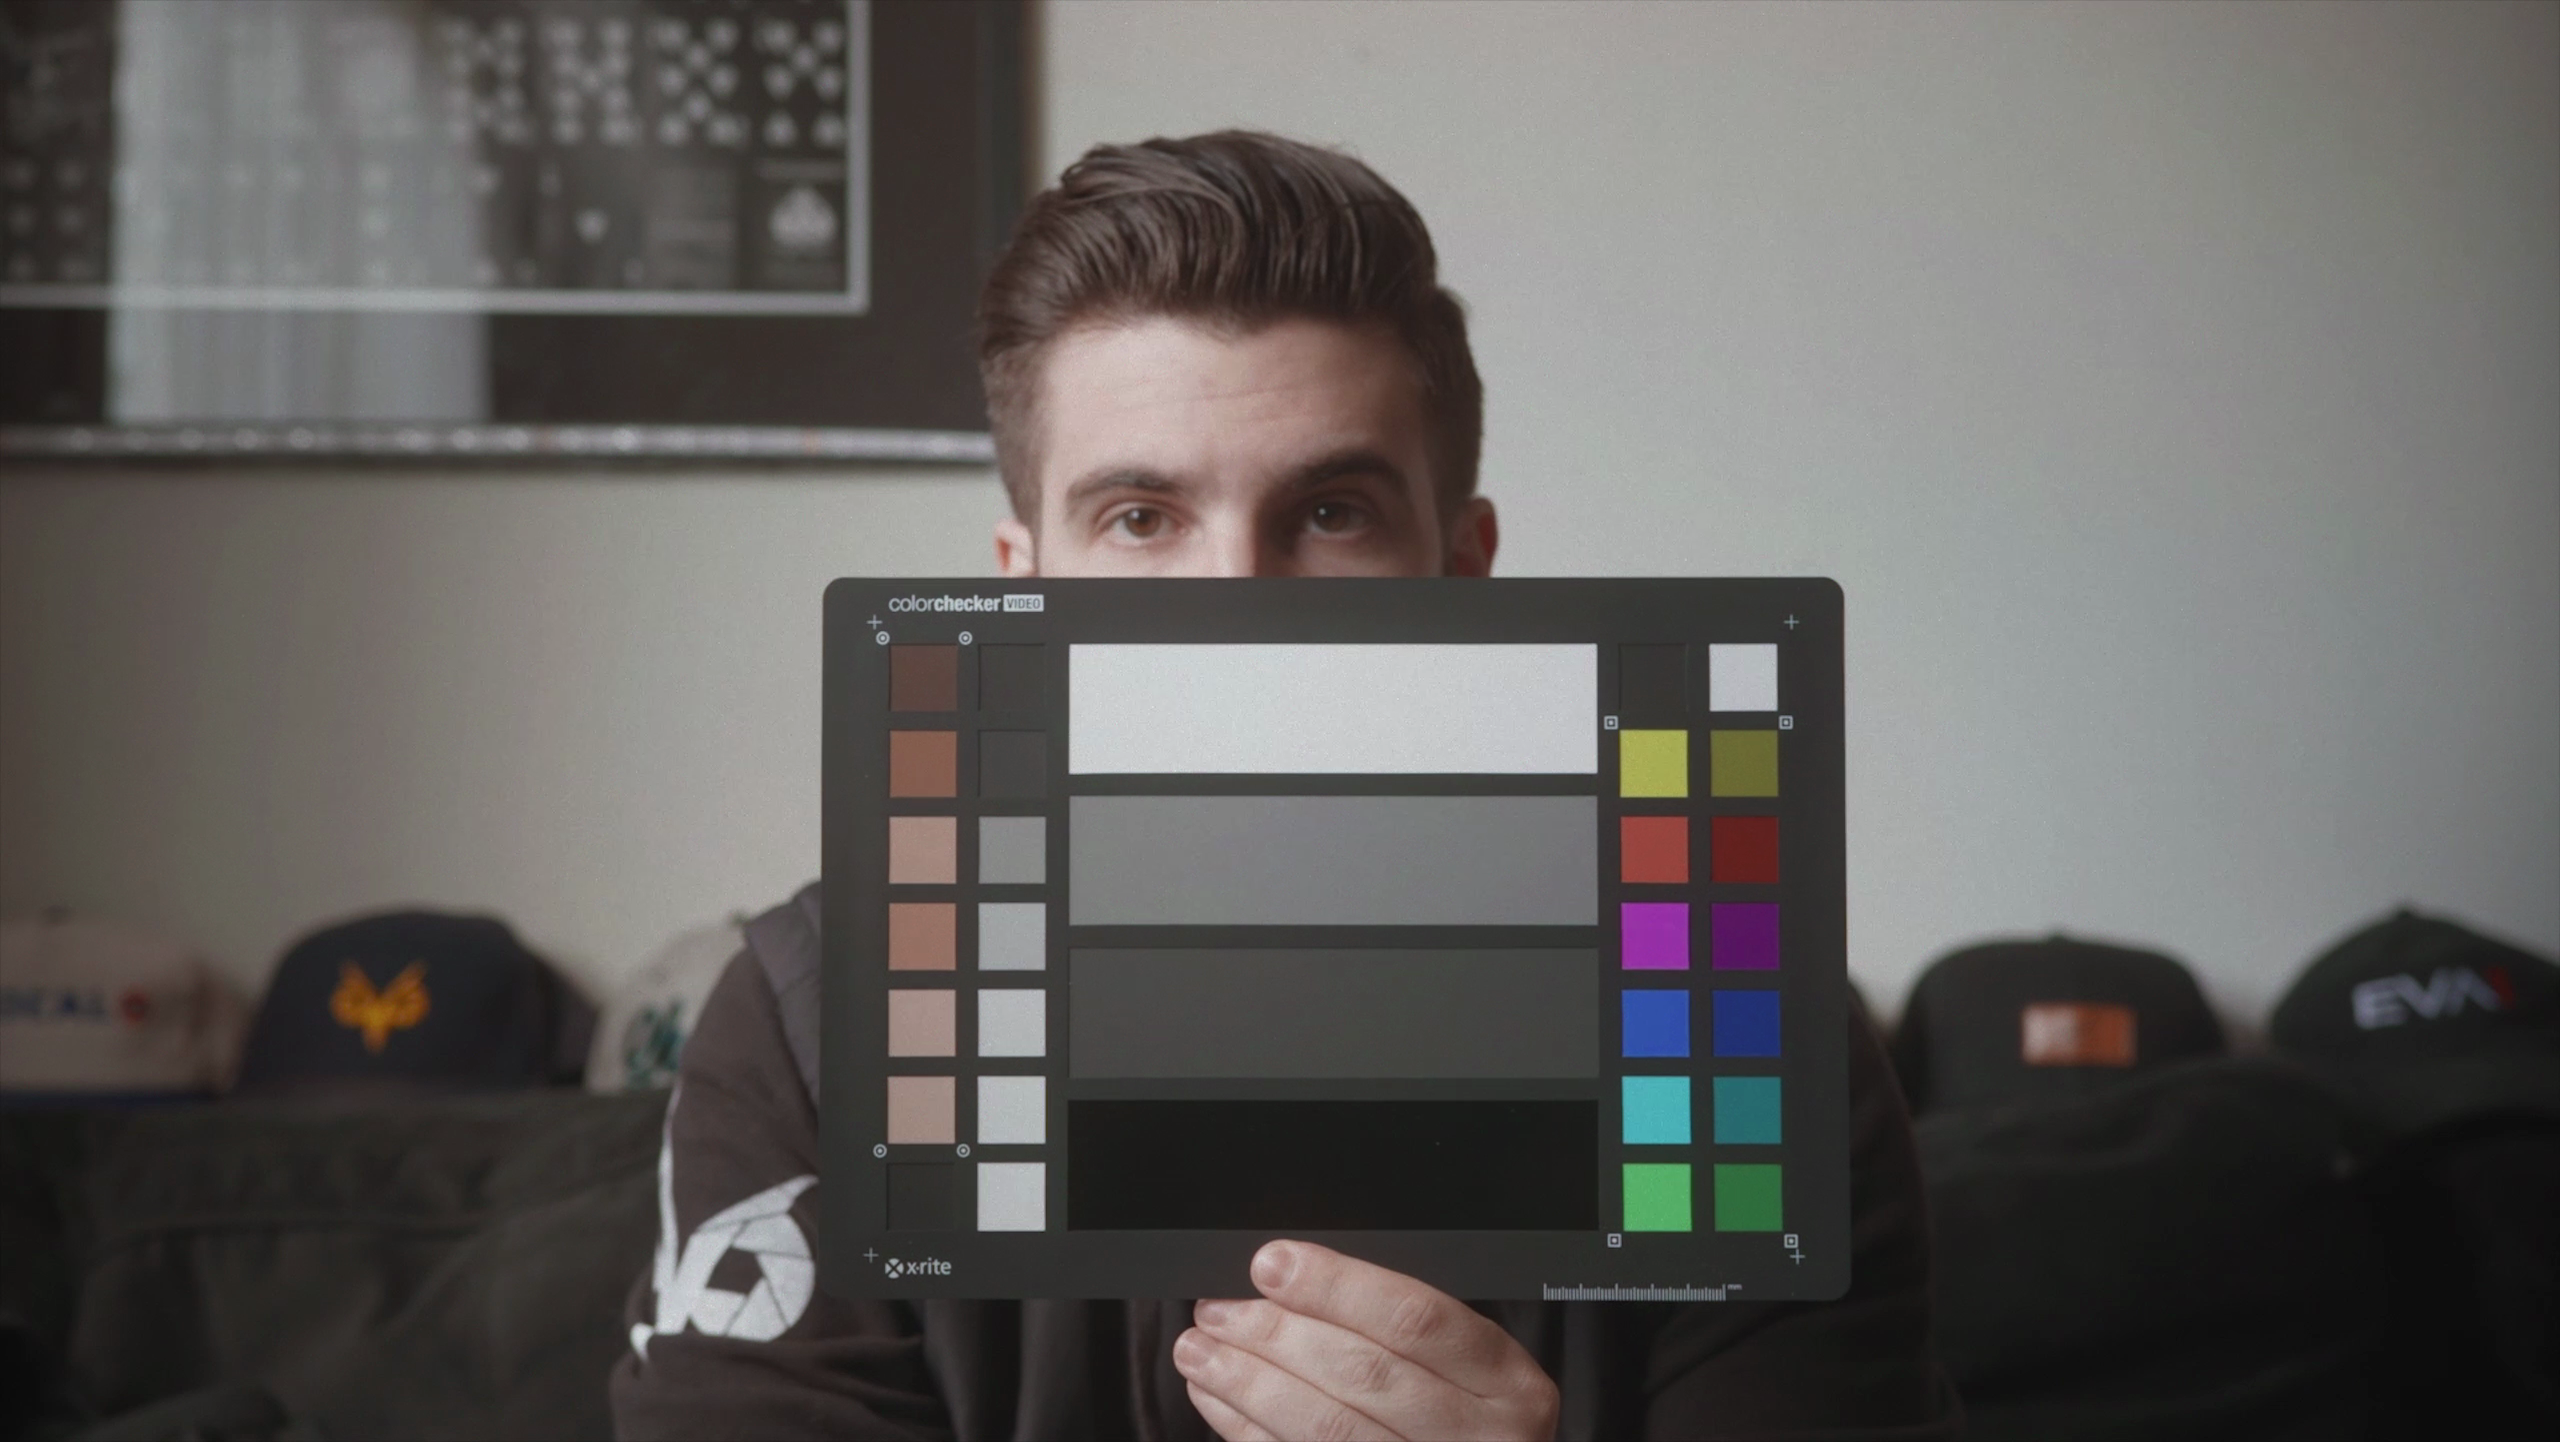 Review: The i1 Filmmaker Kit and Colorchecker Video from X-Rite 2